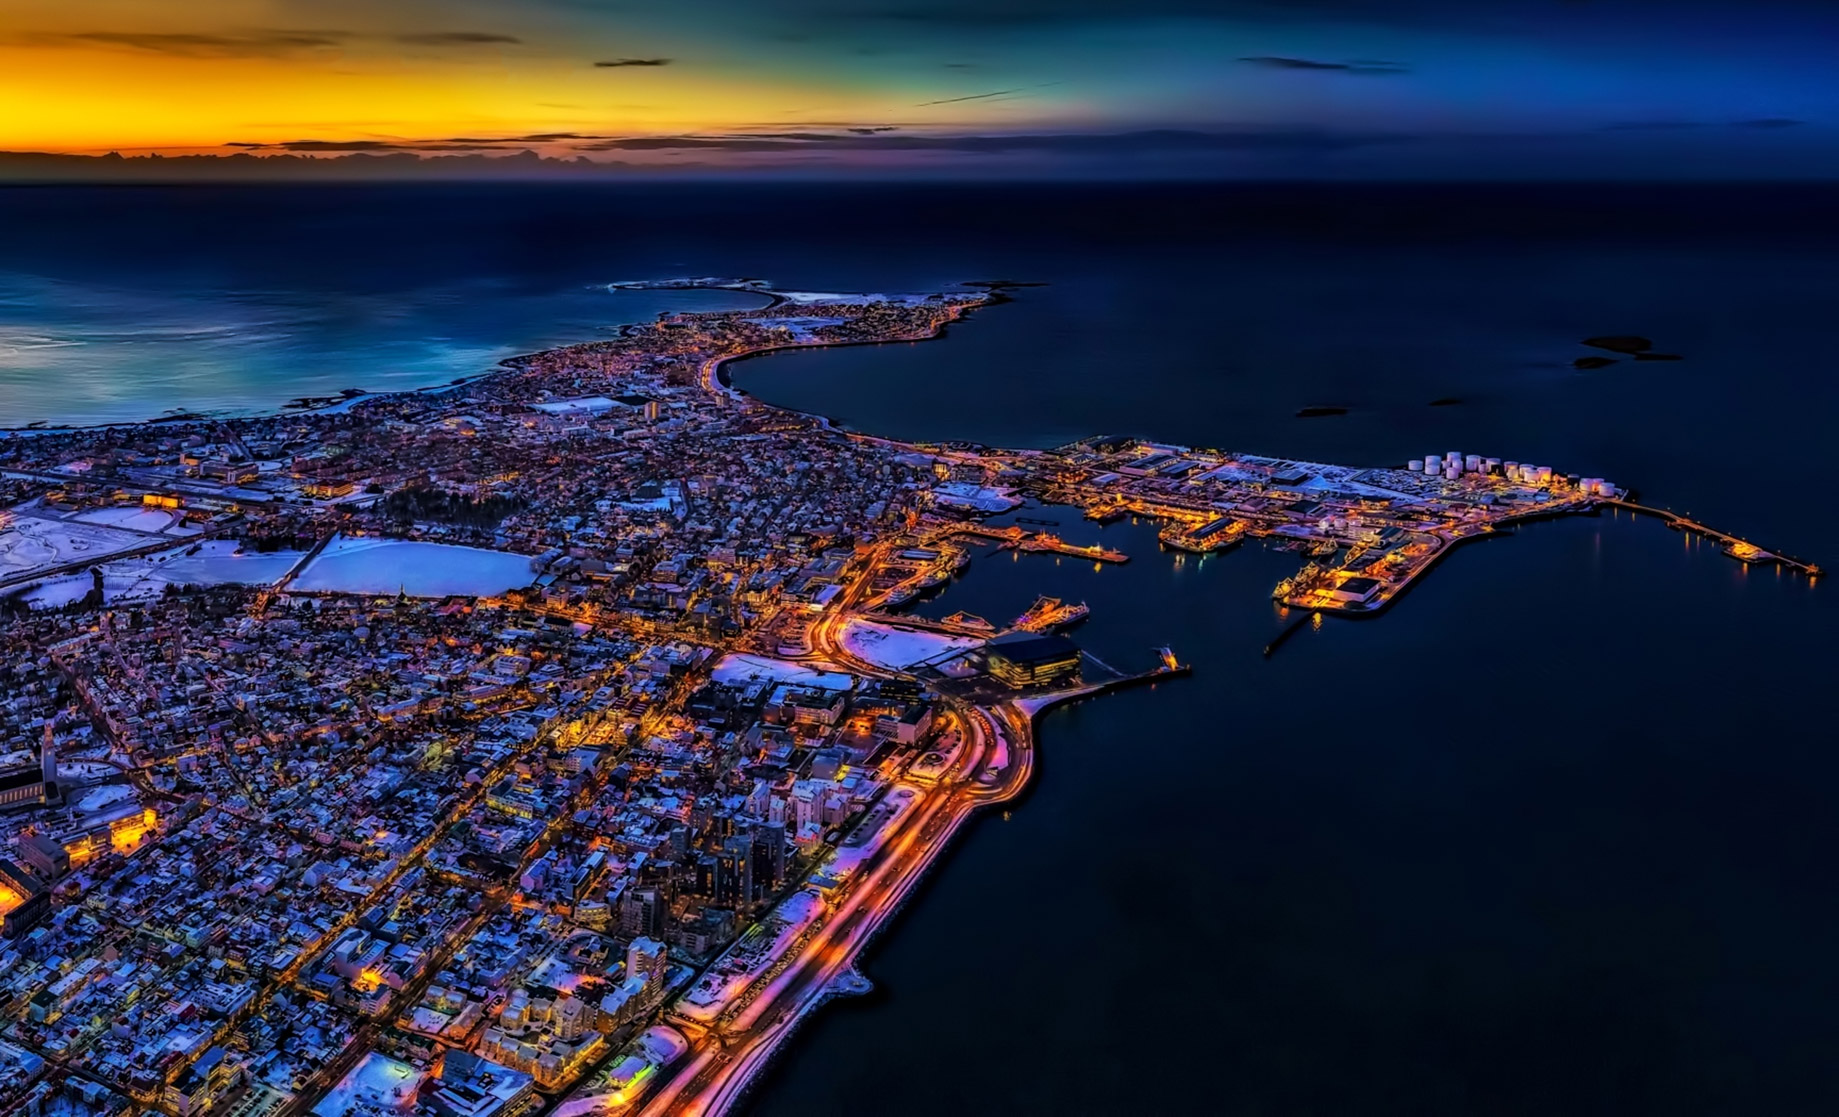 Reykjavik, Iceland - Best Exotic Locations for Remote Workers to Consider a Second Home